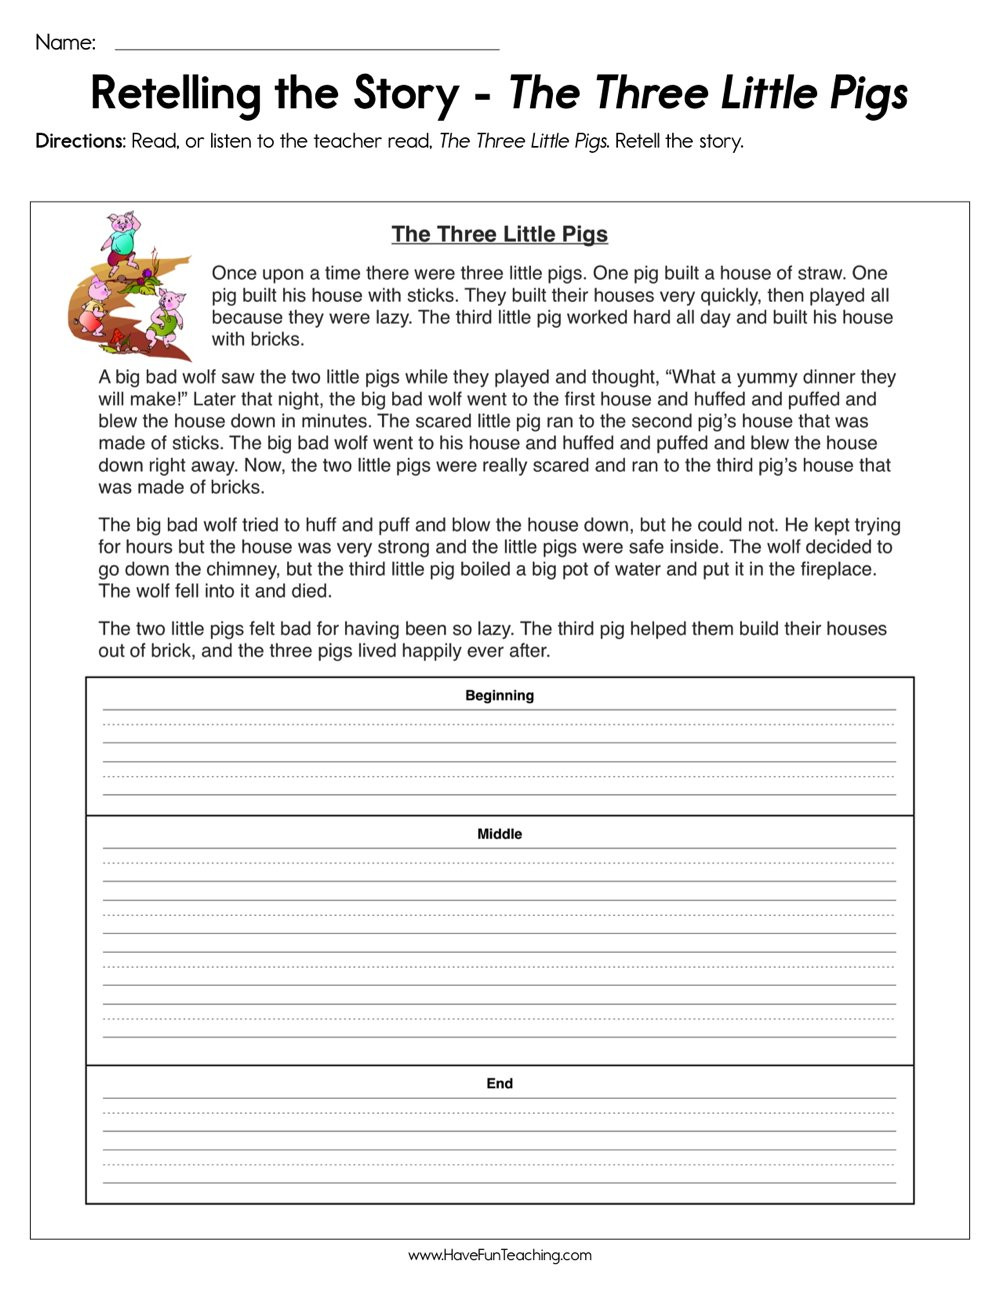 Retell Worksheet First Grade Retelling the Story the Three Little Pigs Worksheet